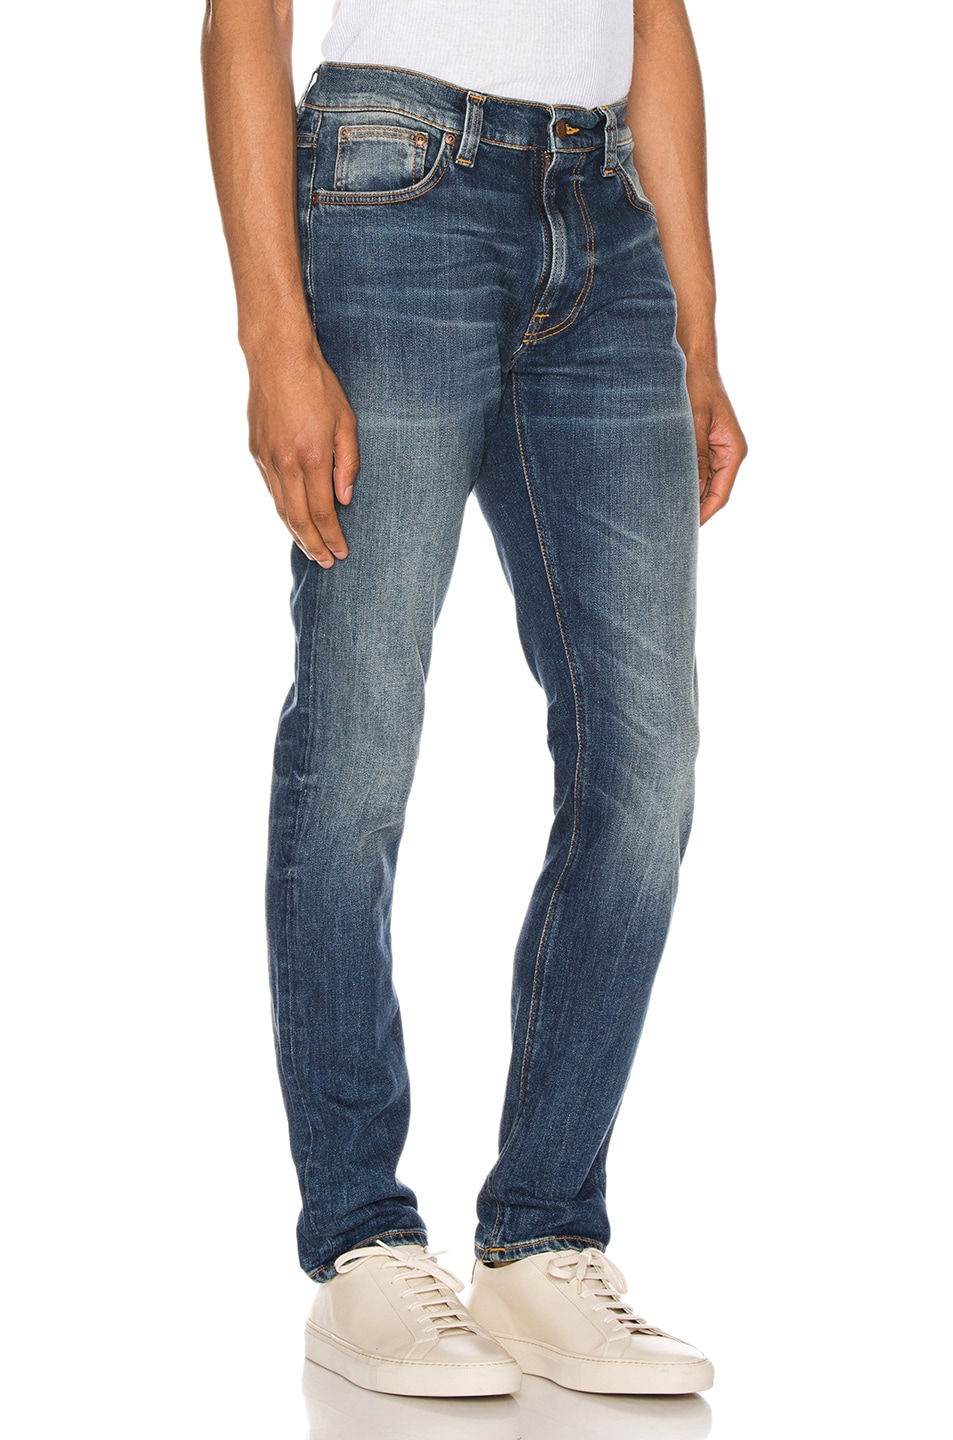 Image 2 of Nudie Jeans Lean Dean in Indigo Shades